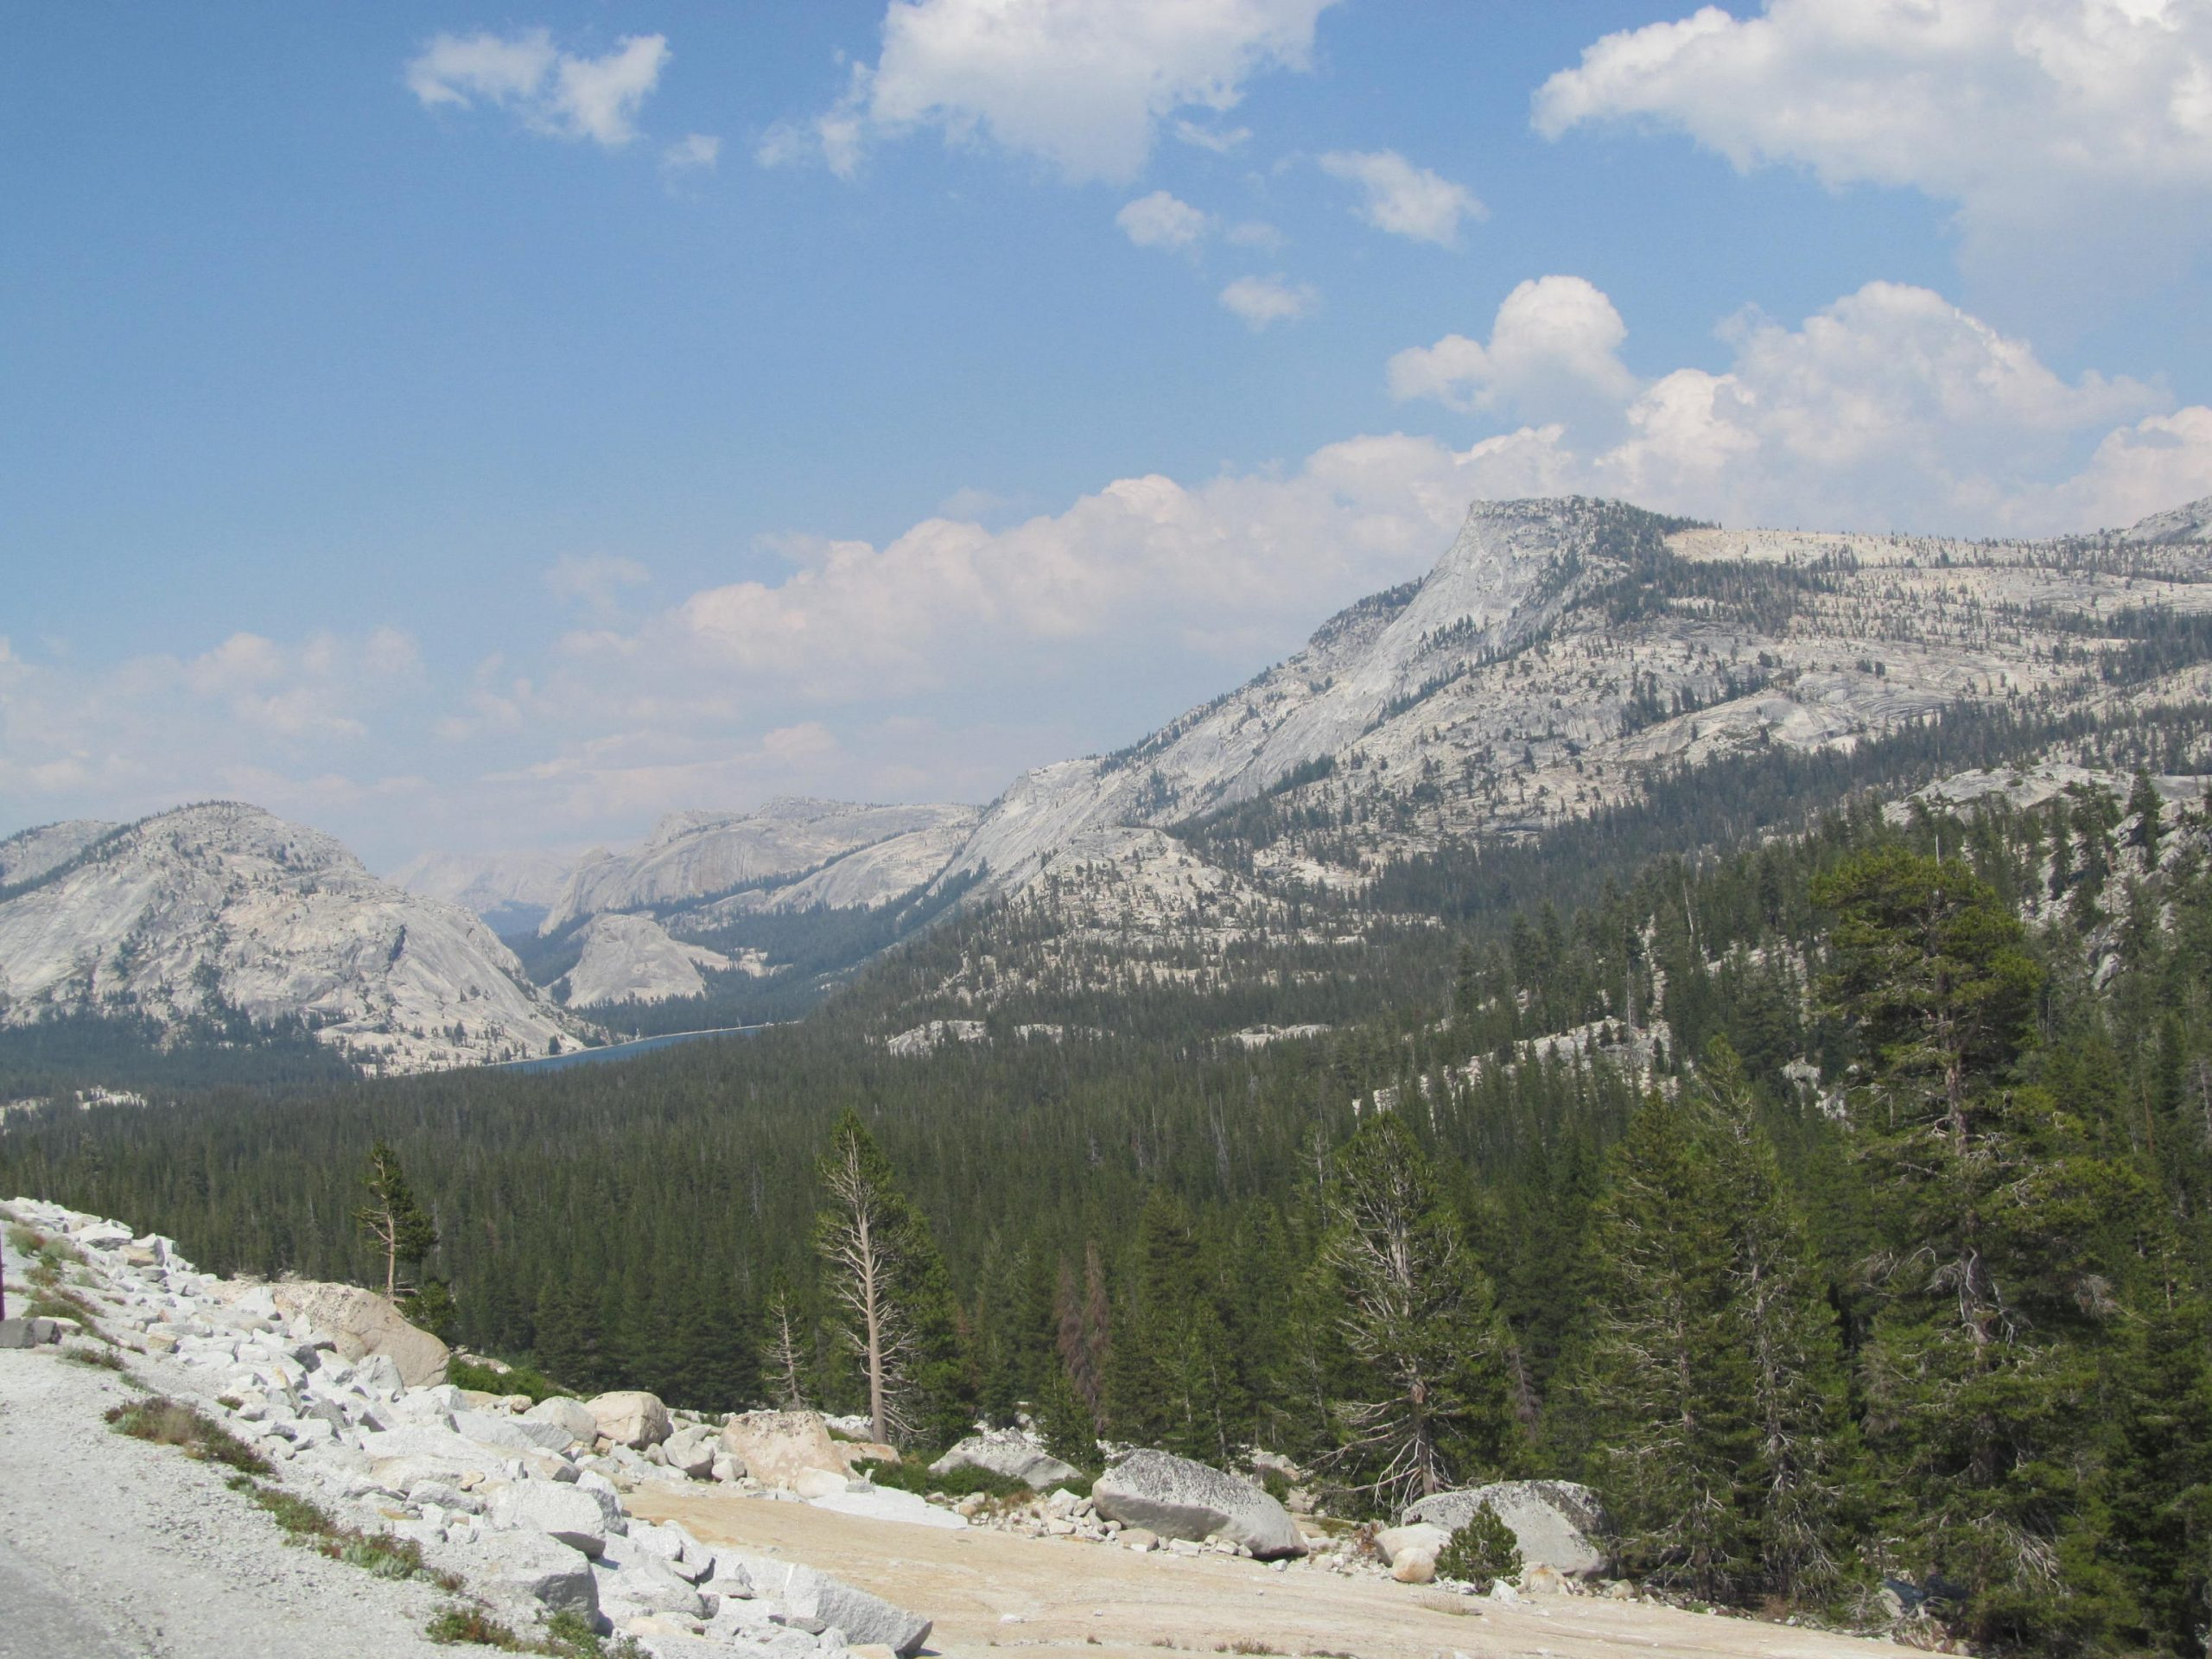 Driving through Yosemite